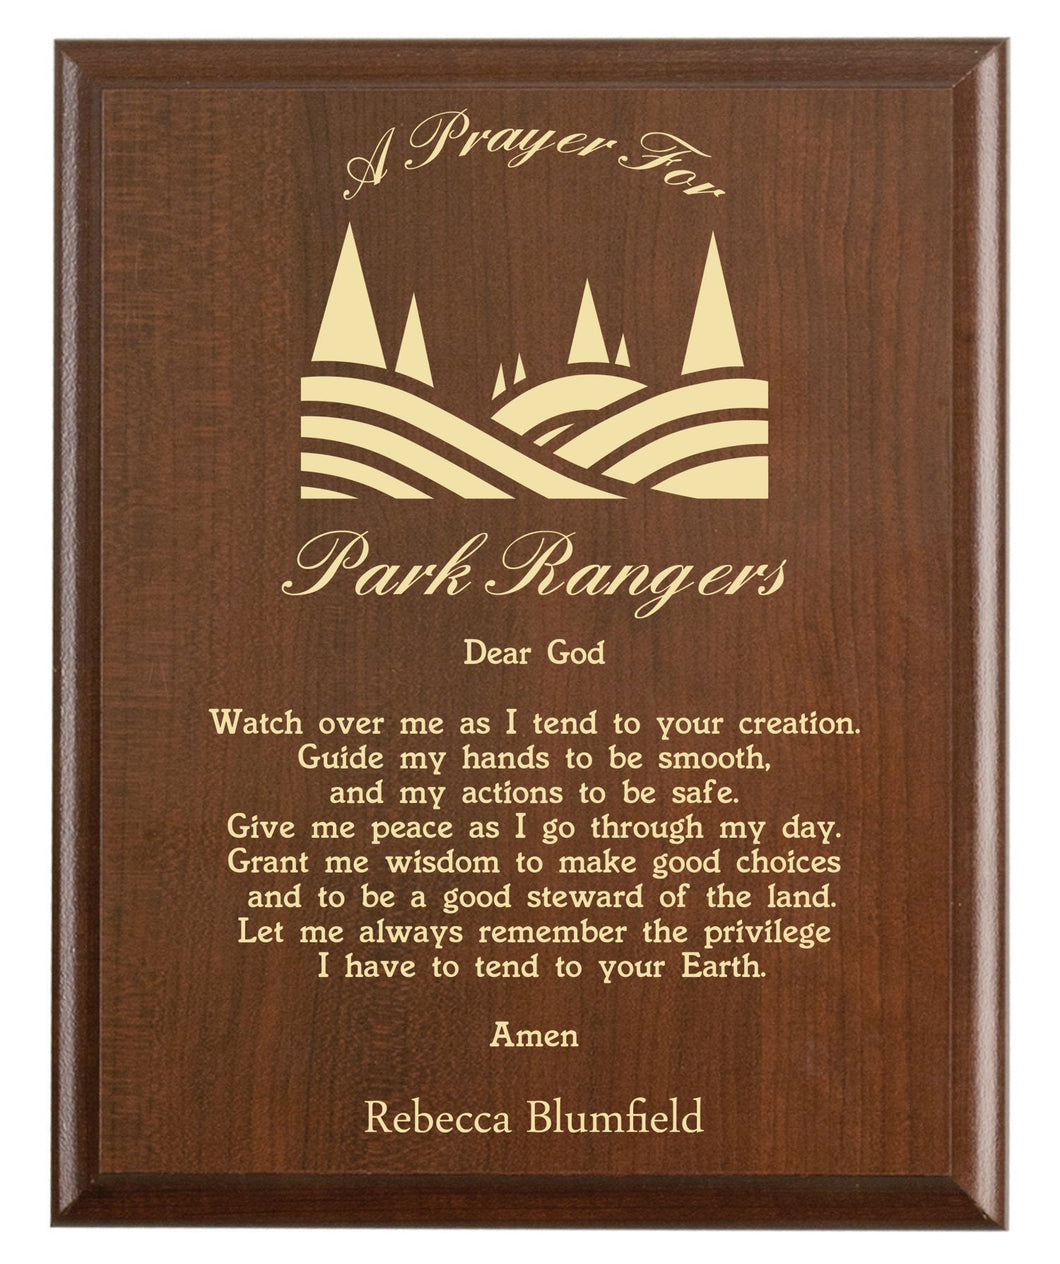 Christian prayer for a park ranger with industry logo and free personalization. Cherry finish with laser engraved text.